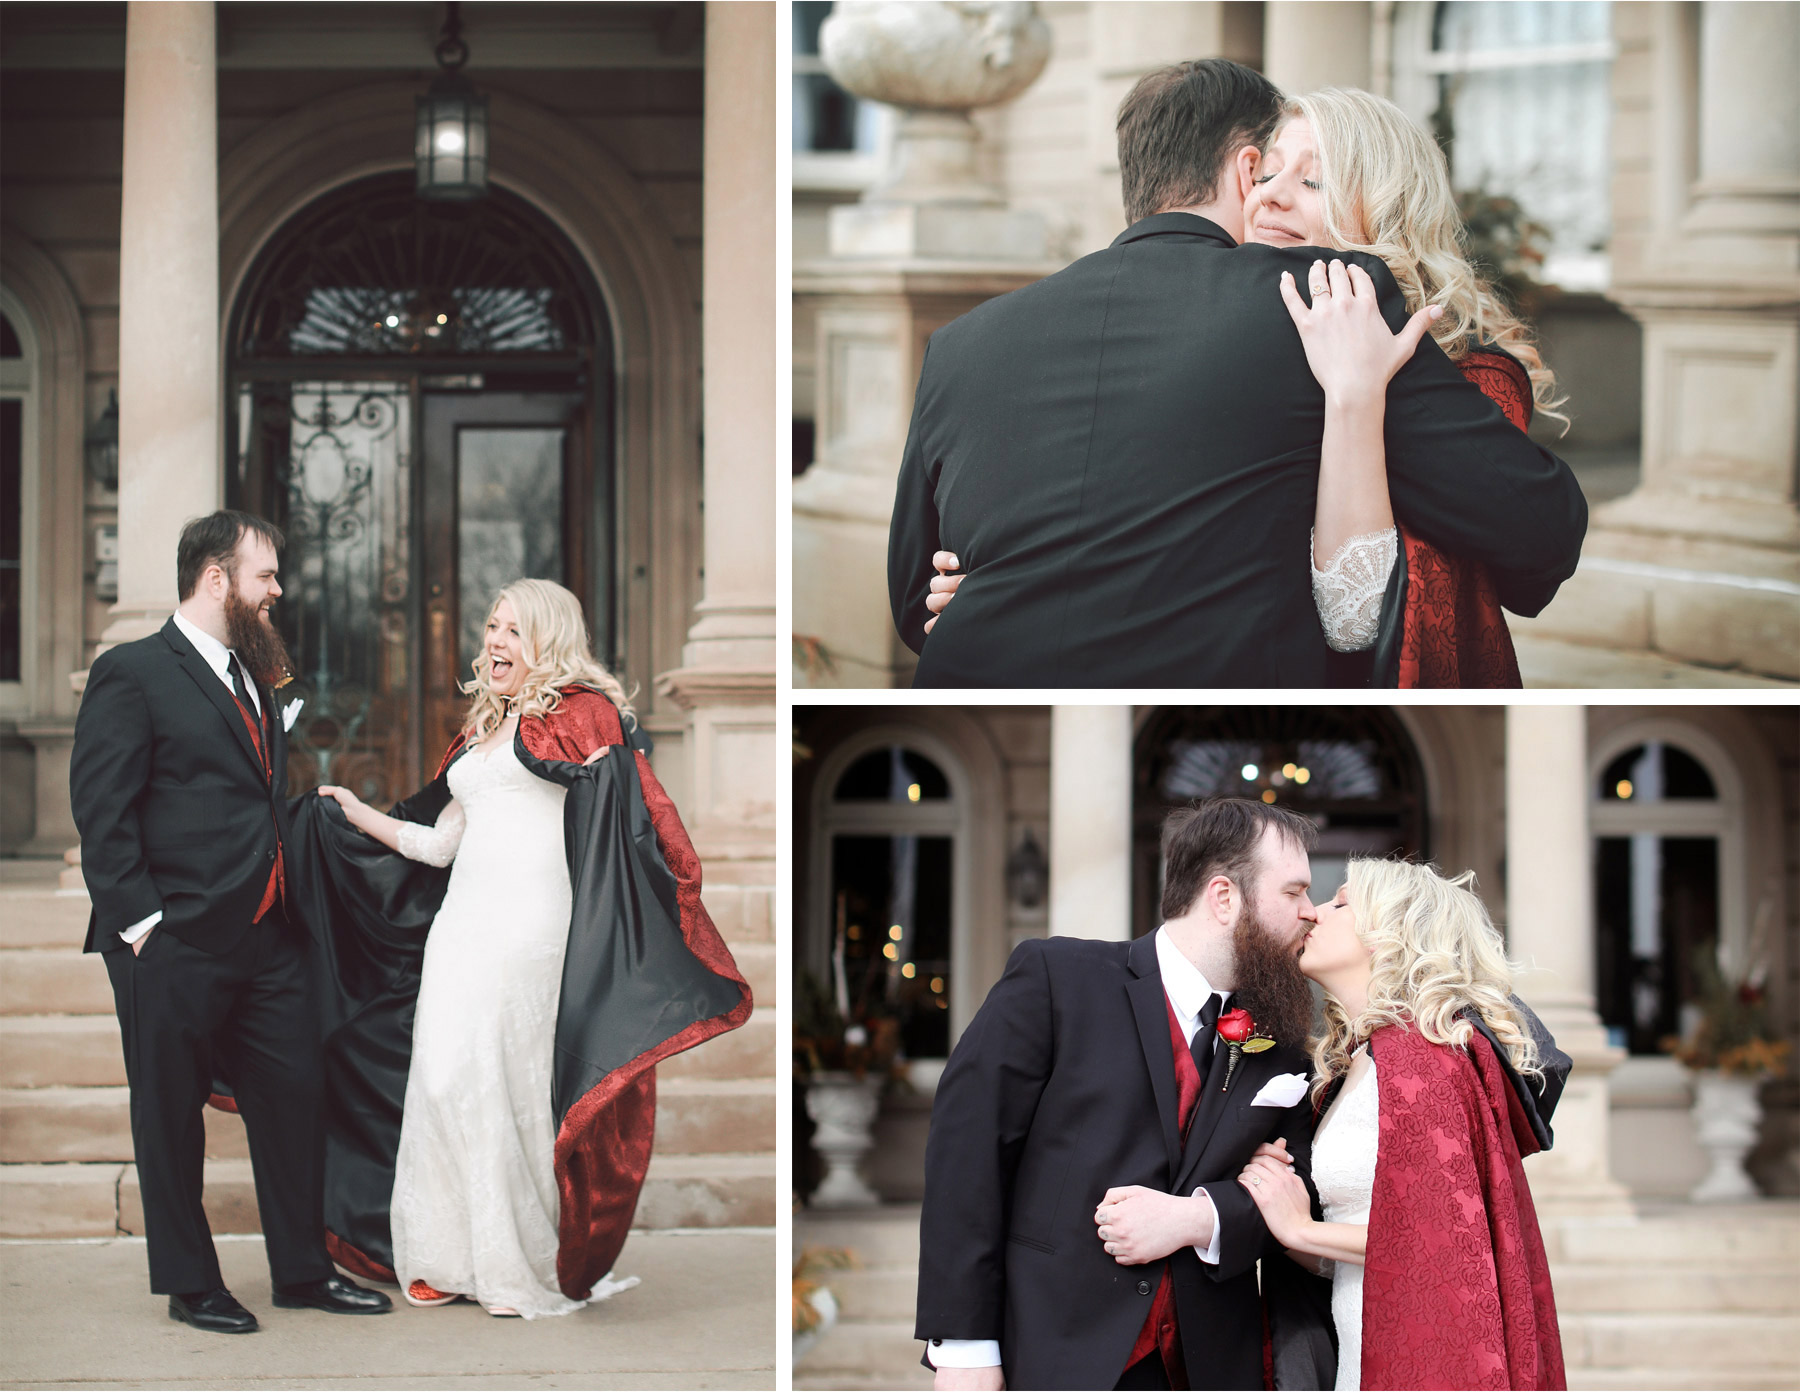 04-Minneapolis-Wedding-Photography-by-Vick-Photography-Red-Cape-Shayla-and-Kyle.jpg